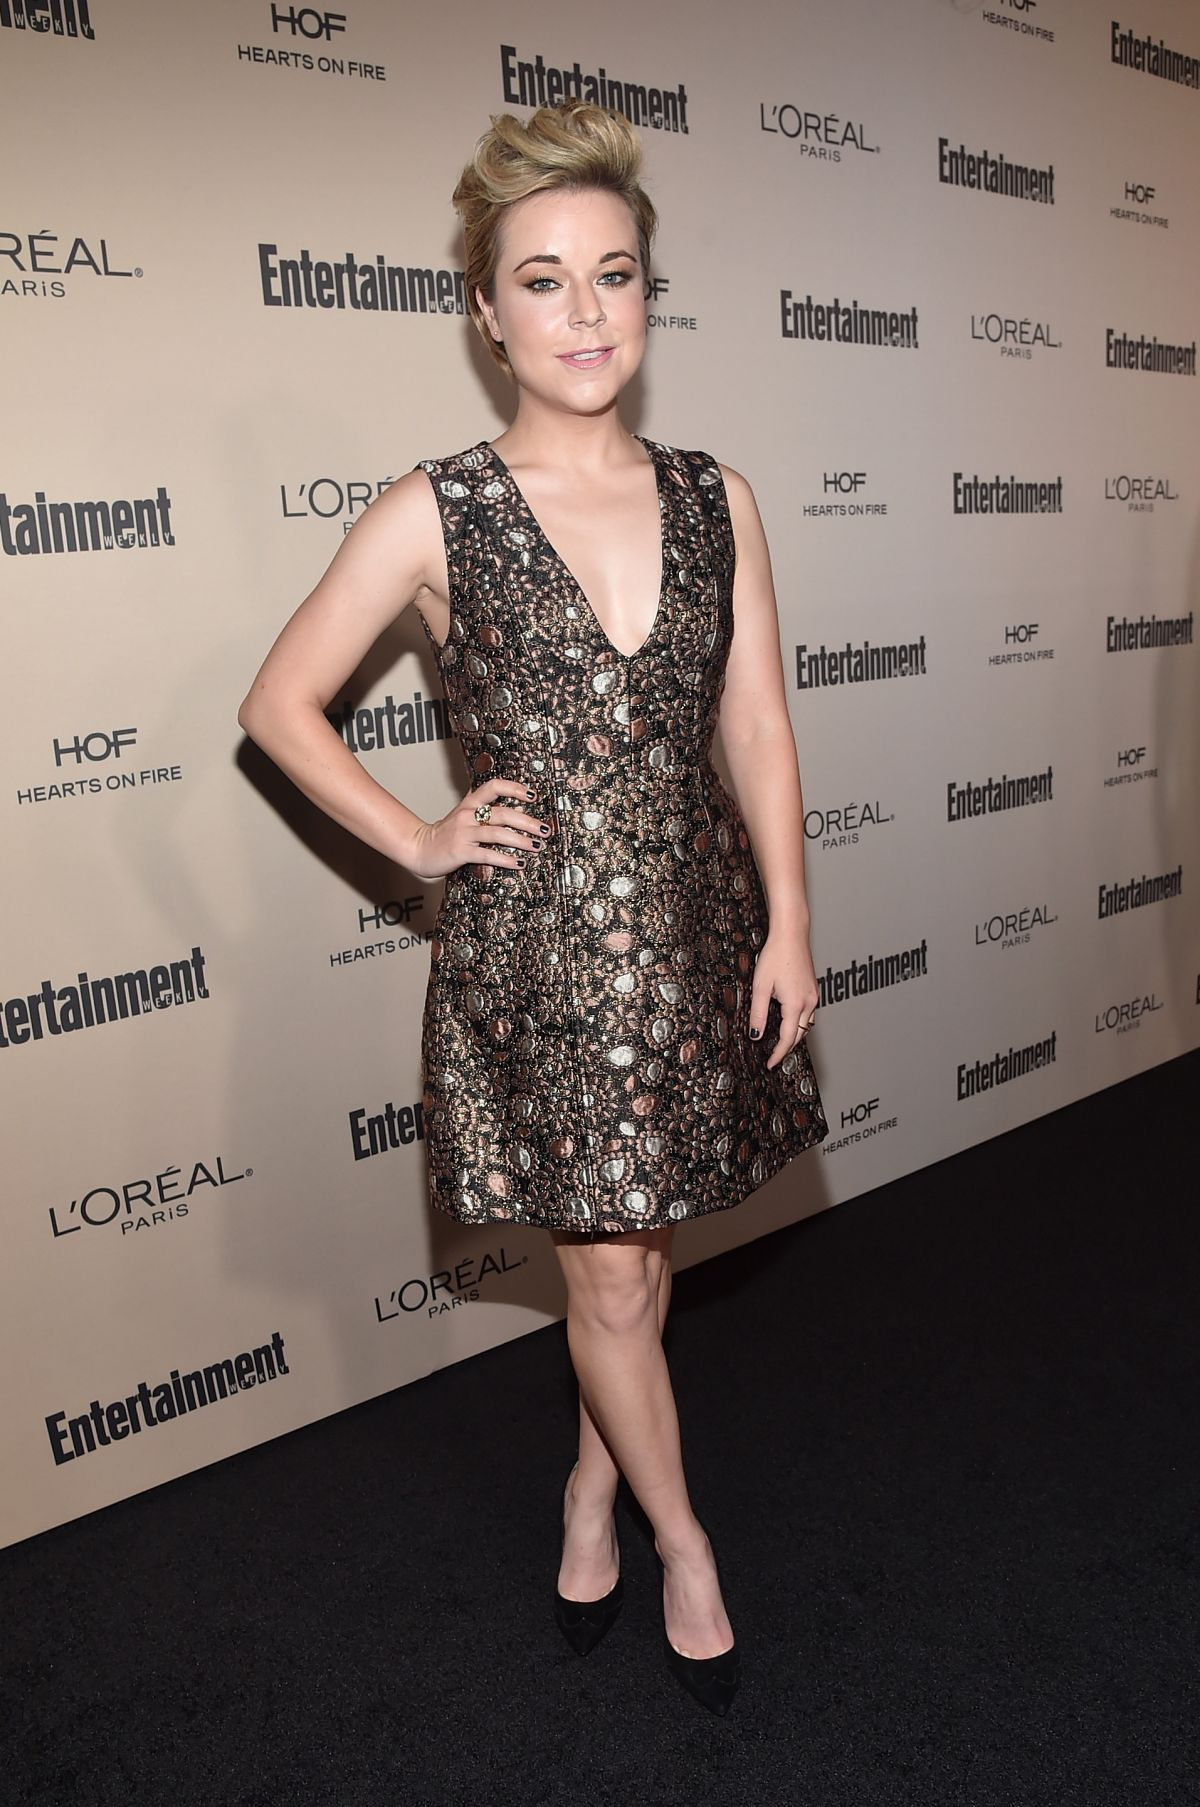 TINA MAJORINO at 2015 Entertainment Weekly Pre-emmy Party in West Hollywood 09/18/2015